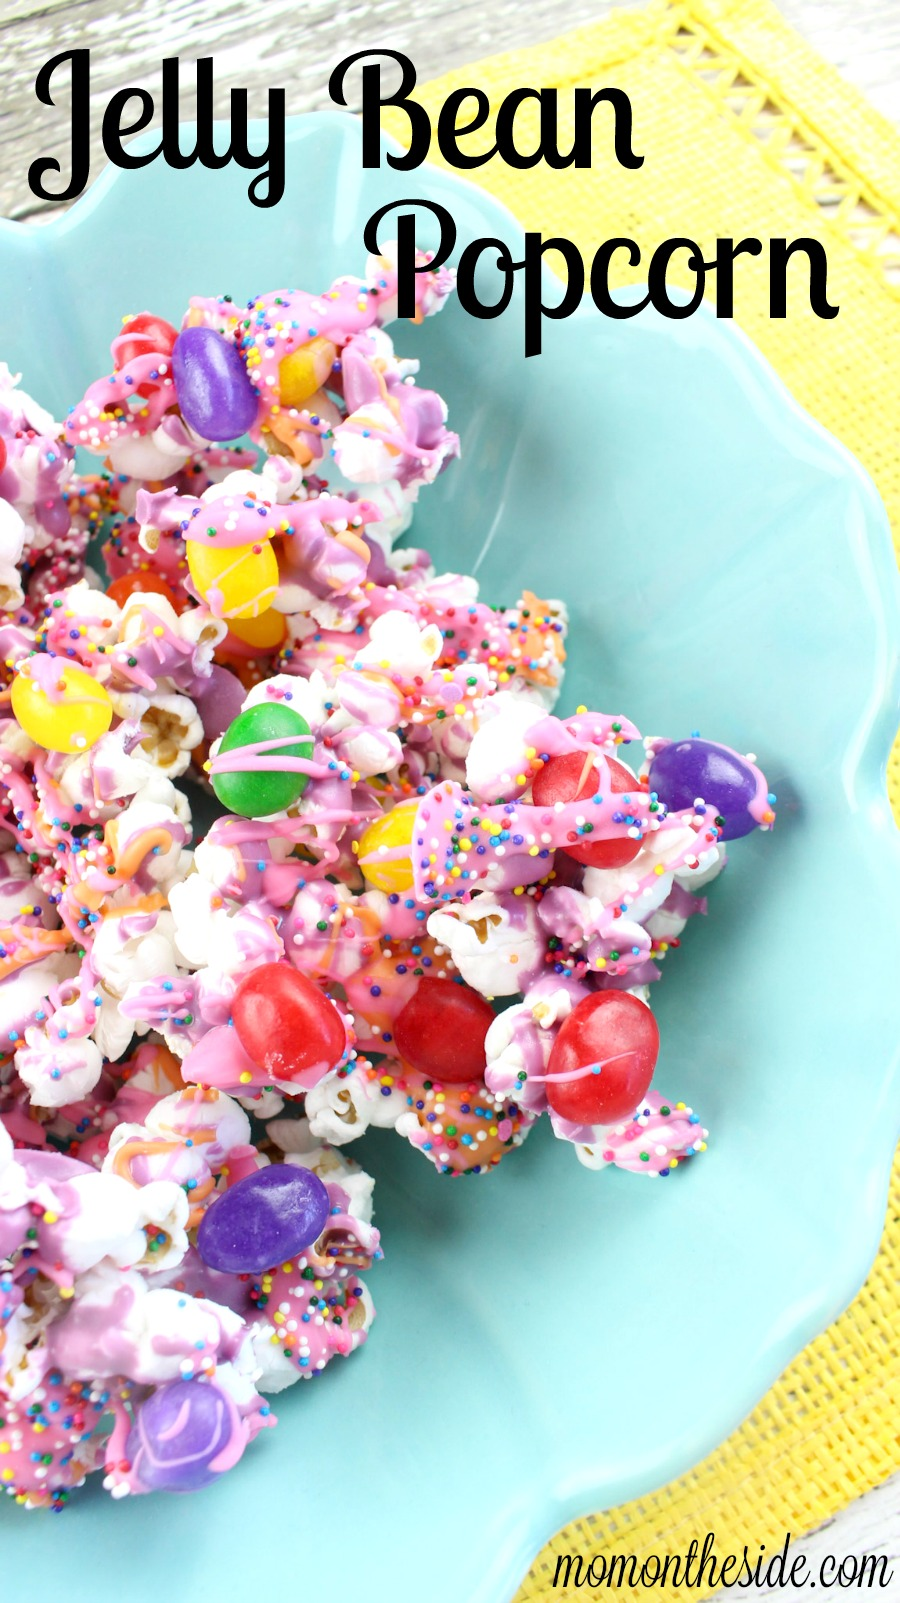 Easy, fun, and colorful dessert! This Jelly Bean Popcorn is the perfect spring treat for kids and adults at your Easter Party.